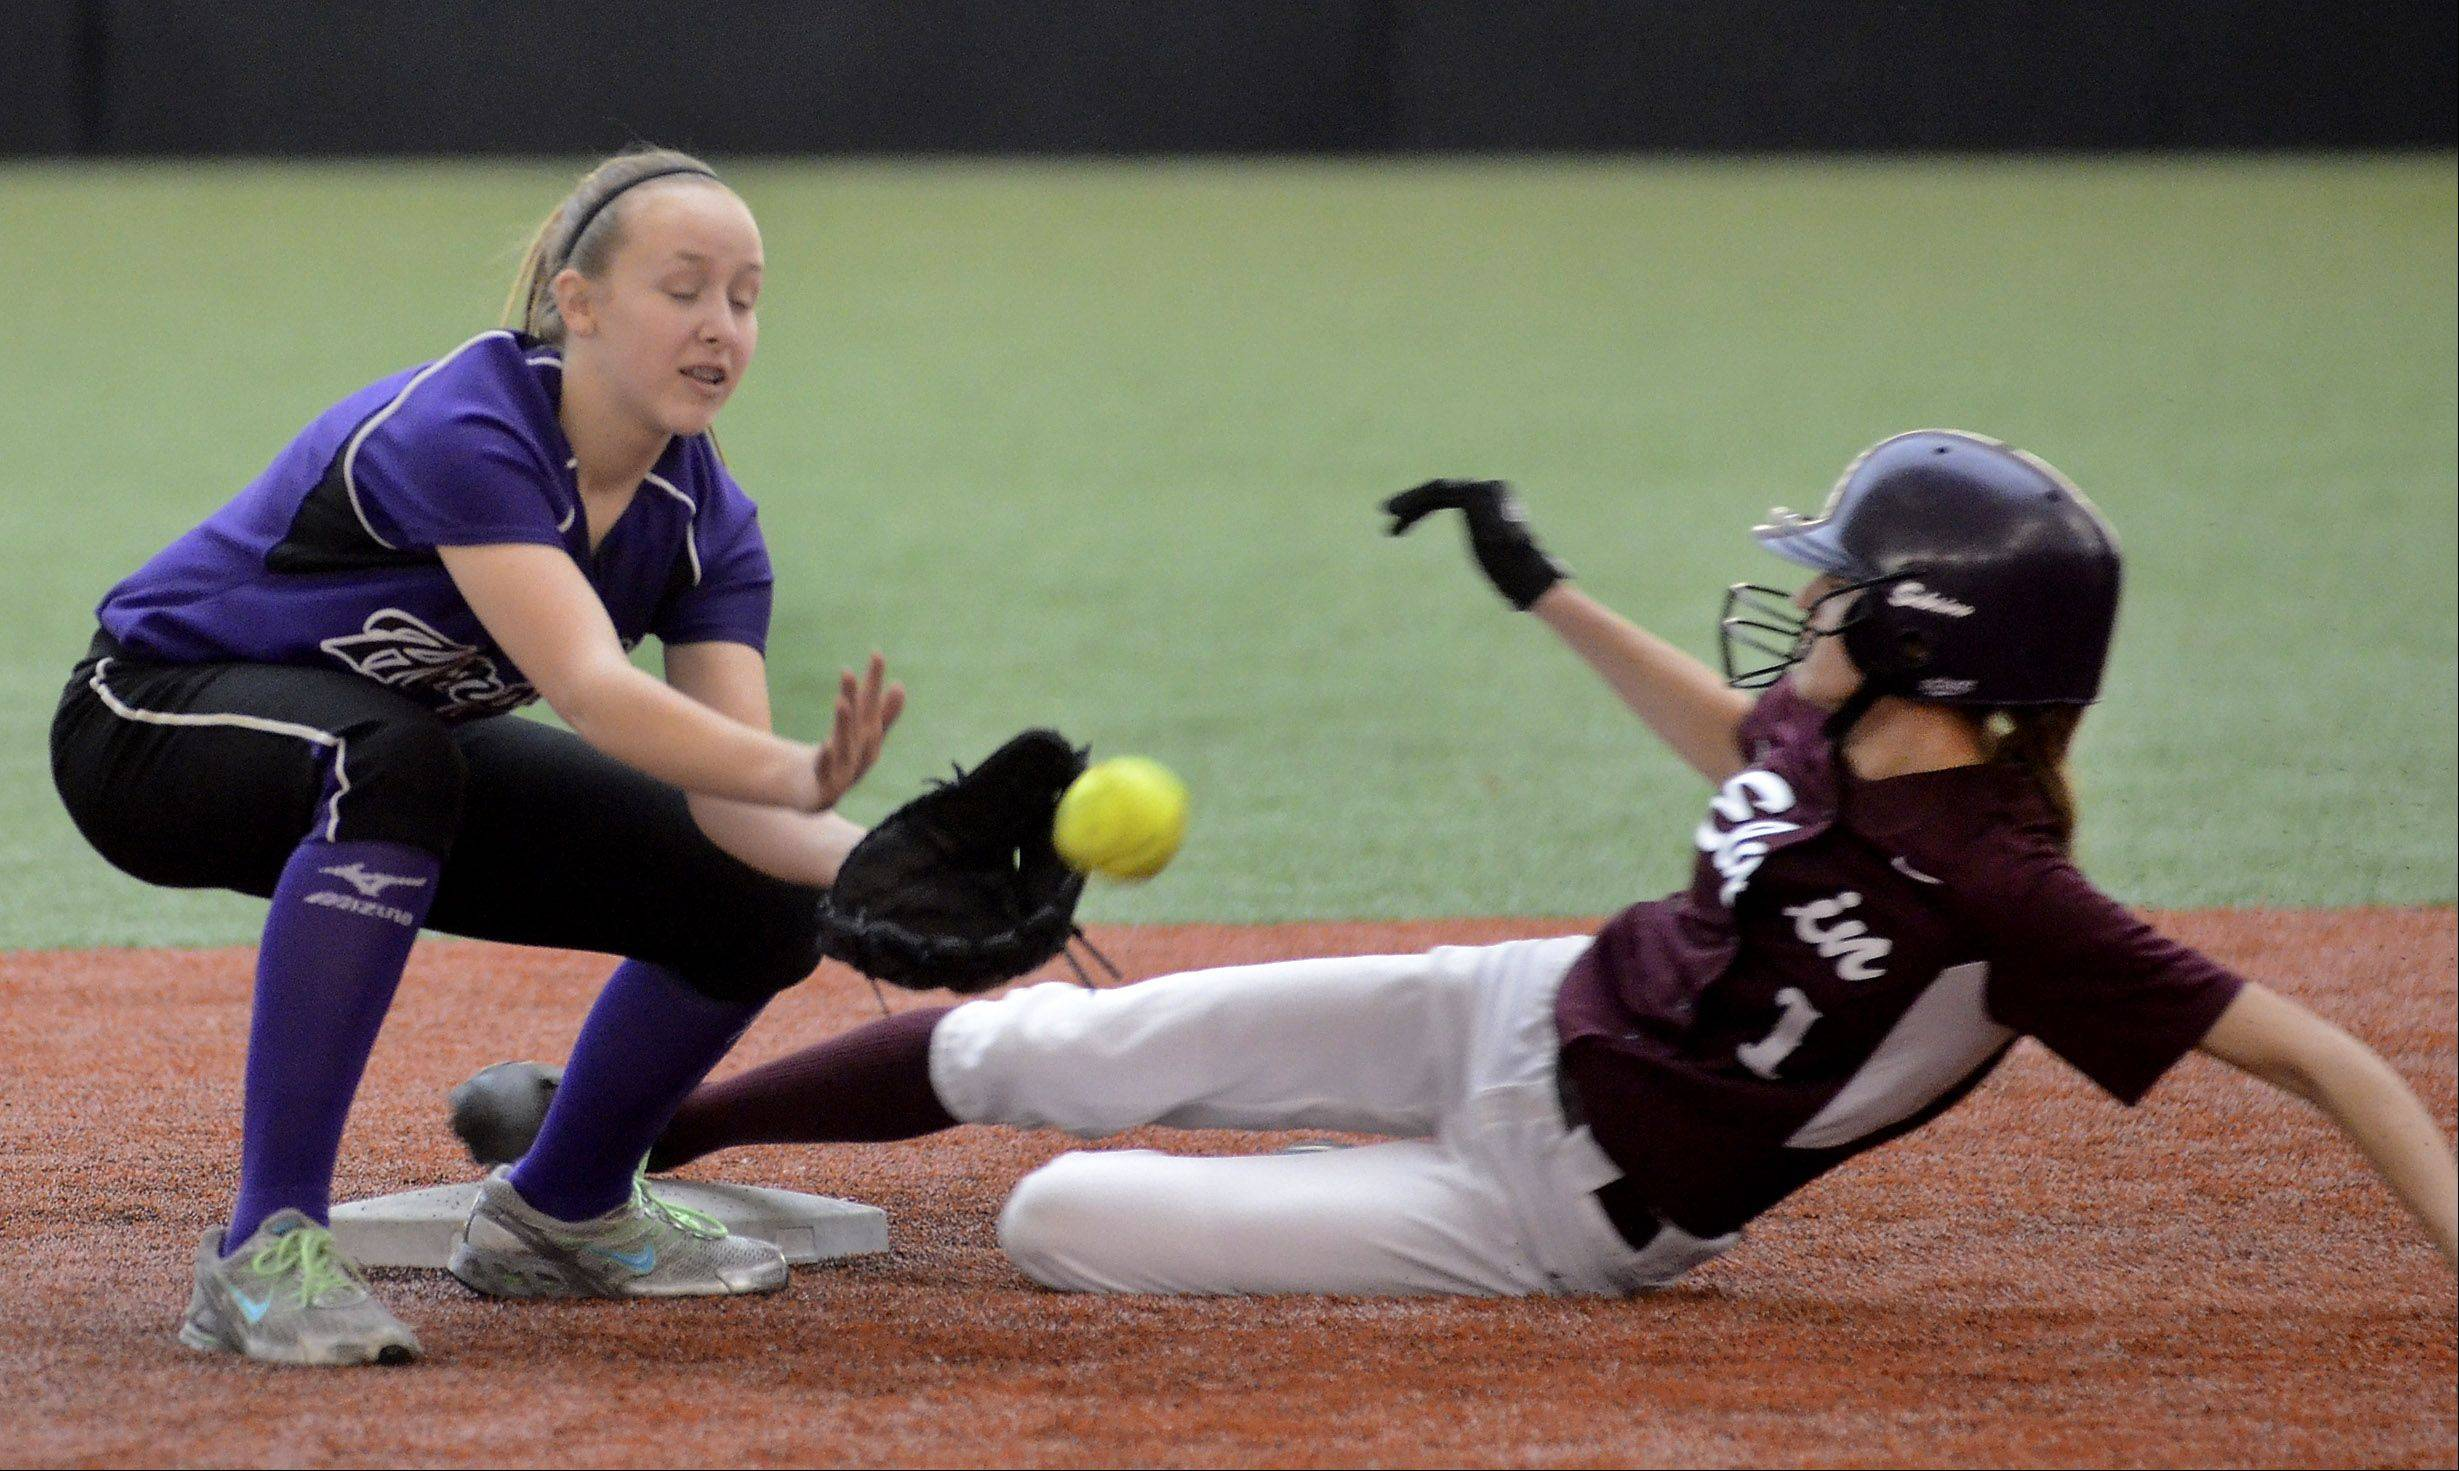 Elgin's Sabrina Stockman steals a base as Hampshire's Ally Snider covers during Monday's softball game.